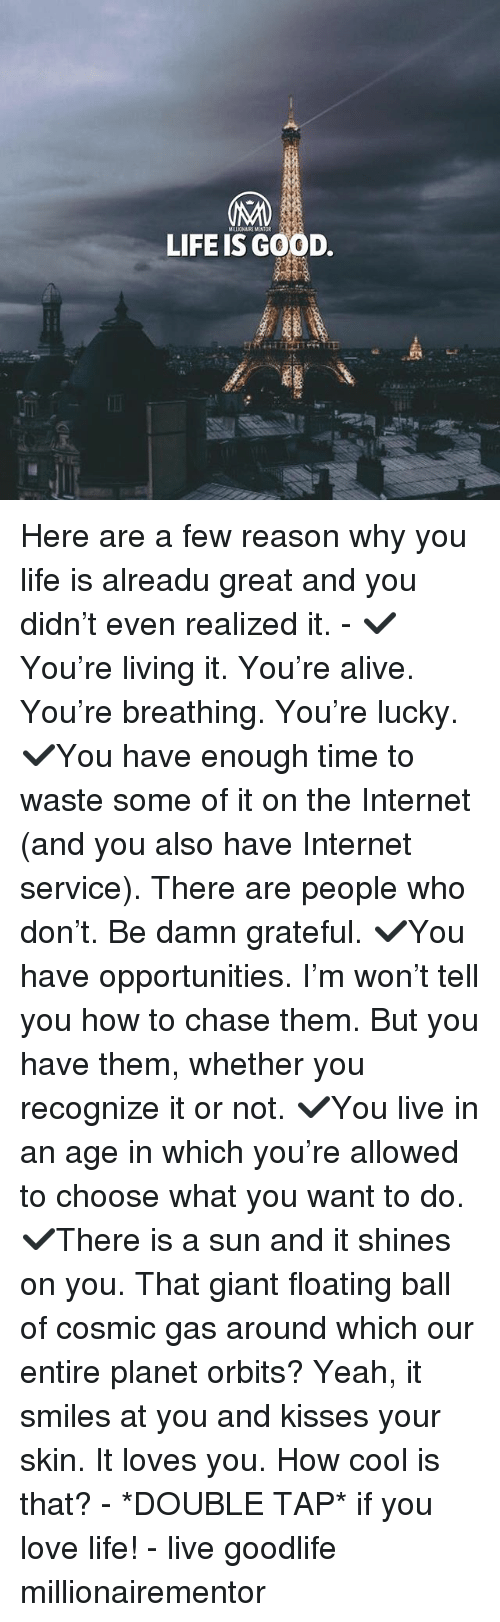 Alive, Internet, and Life: MILLIONAIRE MENTOR  LIFE IS GOOD Here are a few reason why you life is alreadu great and you didn't even realized it. - ✔️You're living it. You're alive. You're breathing. You're lucky. ✔️You have enough time to waste some of it on the Internet (and you also have Internet service). There are people who don't. Be damn grateful. ✔️You have opportunities. I'm won't tell you how to chase them. But you have them, whether you recognize it or not. ✔️You live in an age in which you're allowed to choose what you want to do. ✔️There is a sun and it shines on you. That giant floating ball of cosmic gas around which our entire planet orbits? Yeah, it smiles at you and kisses your skin. It loves you. How cool is that? - *DOUBLE TAP* if you love life! - live goodlife millionairementor